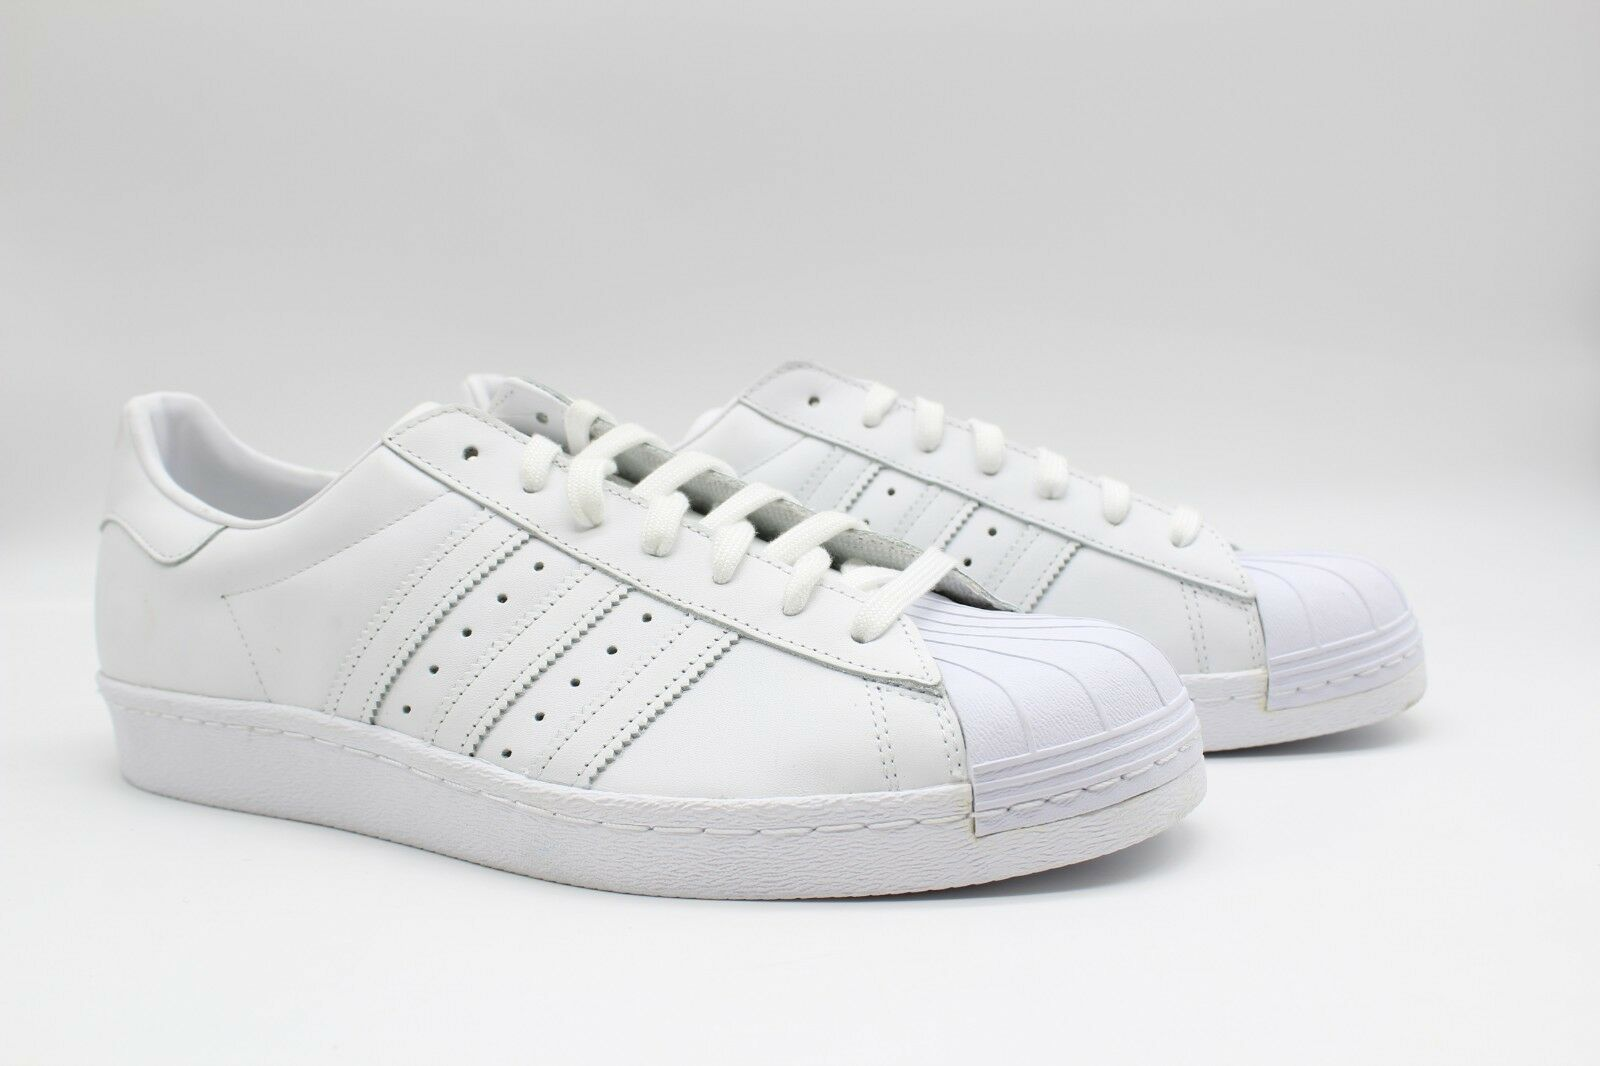 Adidas Men's Superstar '80s White S79443 NWOB